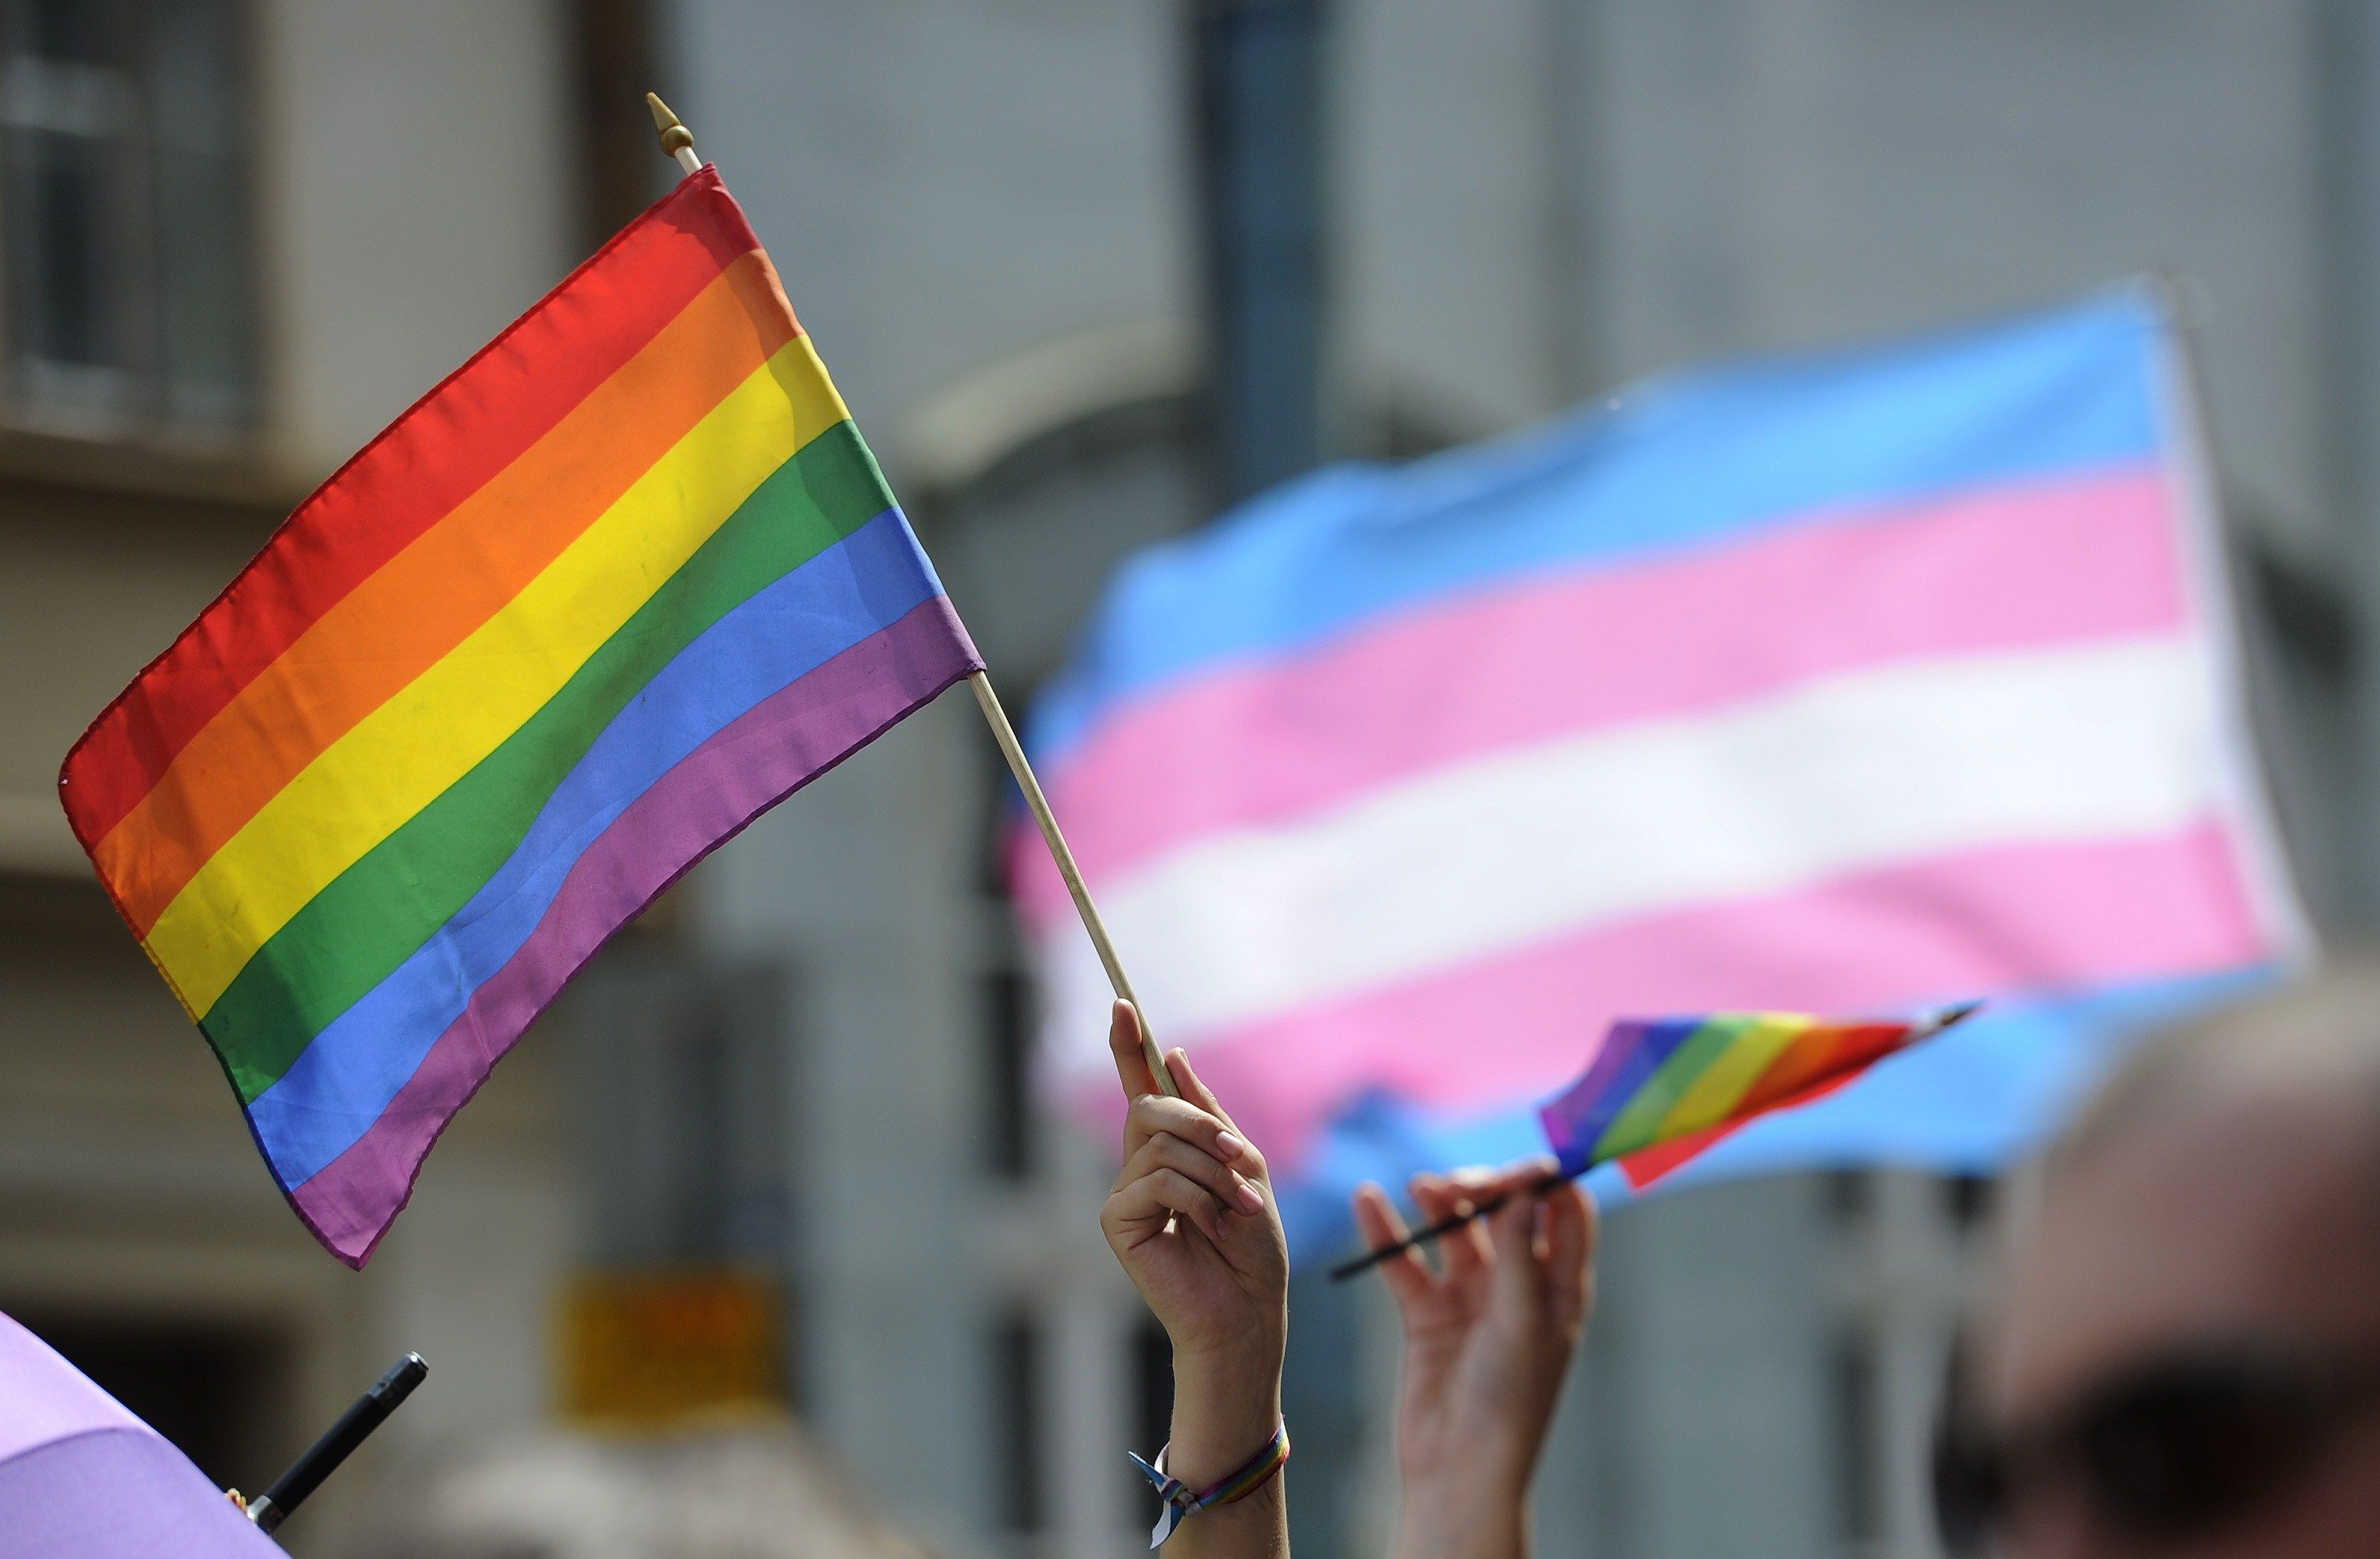 Outdoors, at what looks to be a pride celebration, hands are raised in the air, some holding onto small rainbow flags, -which are billowing in the breeze. In the background is a large transgender flag waving with a building behind it.